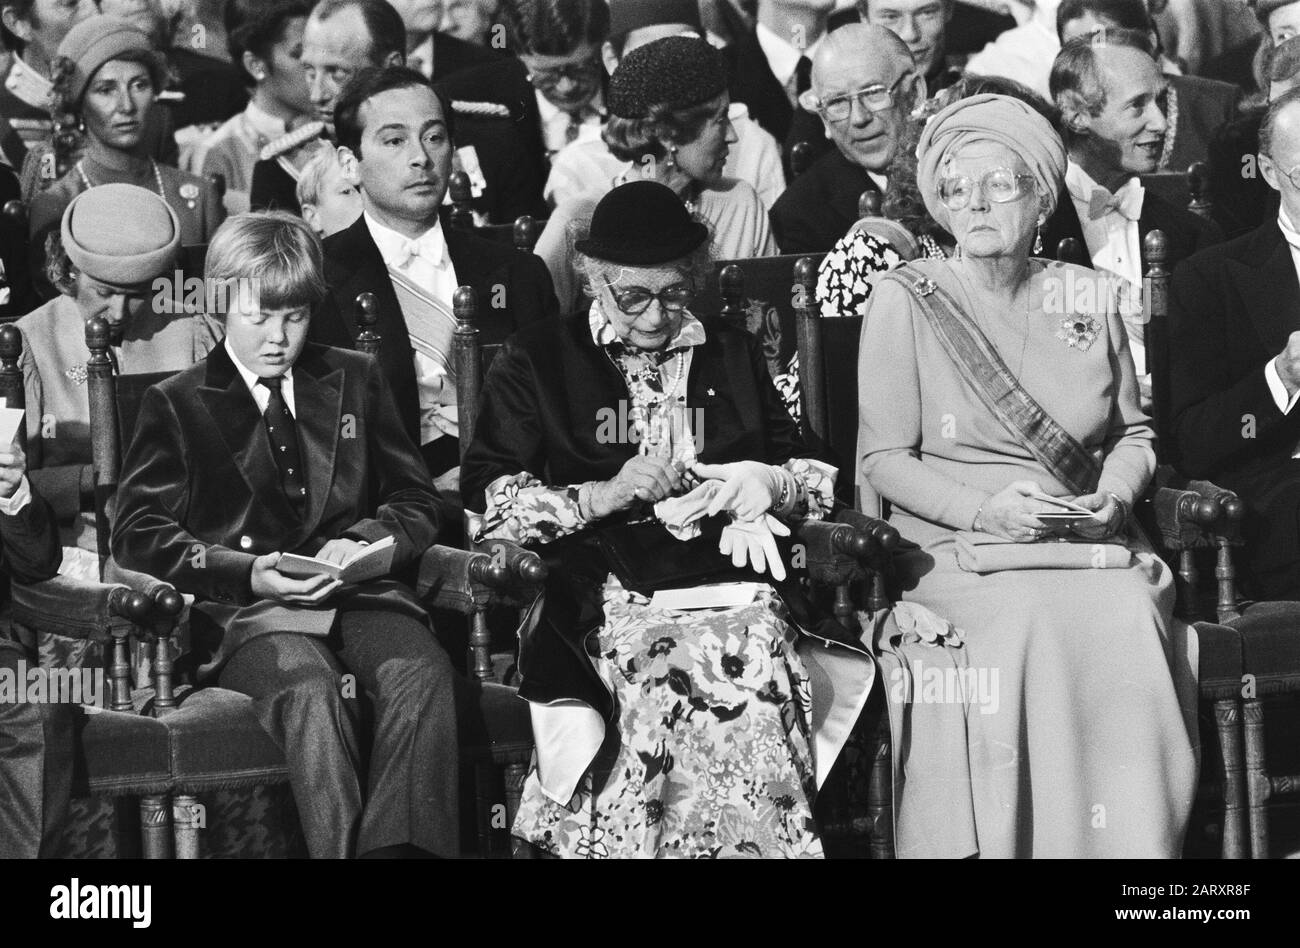 Throne change April 30, inauguration in New Church; in the foreground of Prince Willem Alexander, Mrs. van Amsberg and Prince Juliana/Date: April 30, 1980 Keywords: inaugurations Personal name: Juliana, princess, Willem-Alexander, Prince of Orange Institution name: New Church Stock Photo